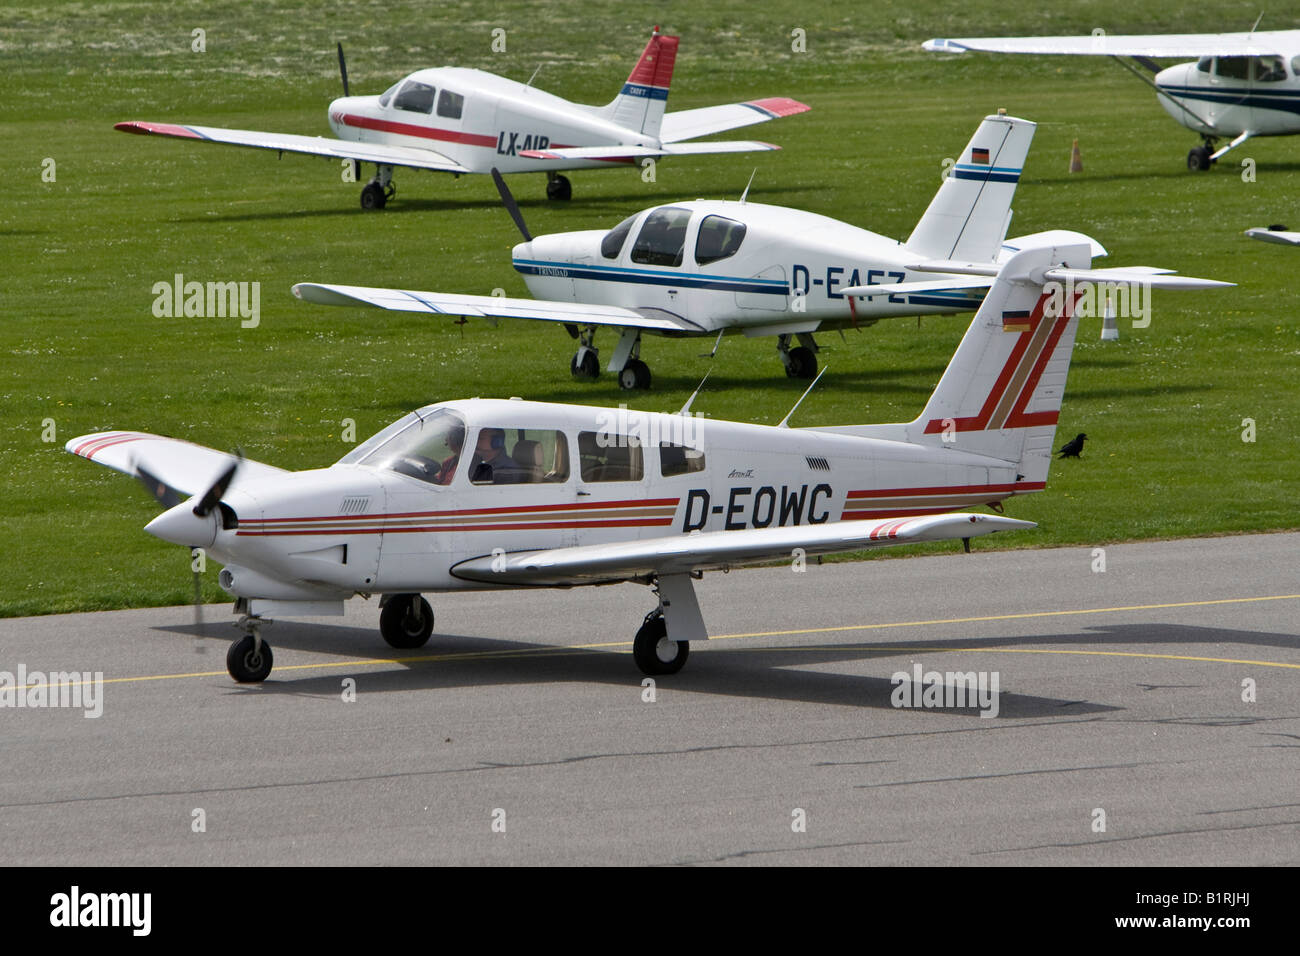 Small sports aeroplane taxiing on the runway of Mannheim Airport, Baden-Wuerttemberg, Germany, Europe - Stock Image